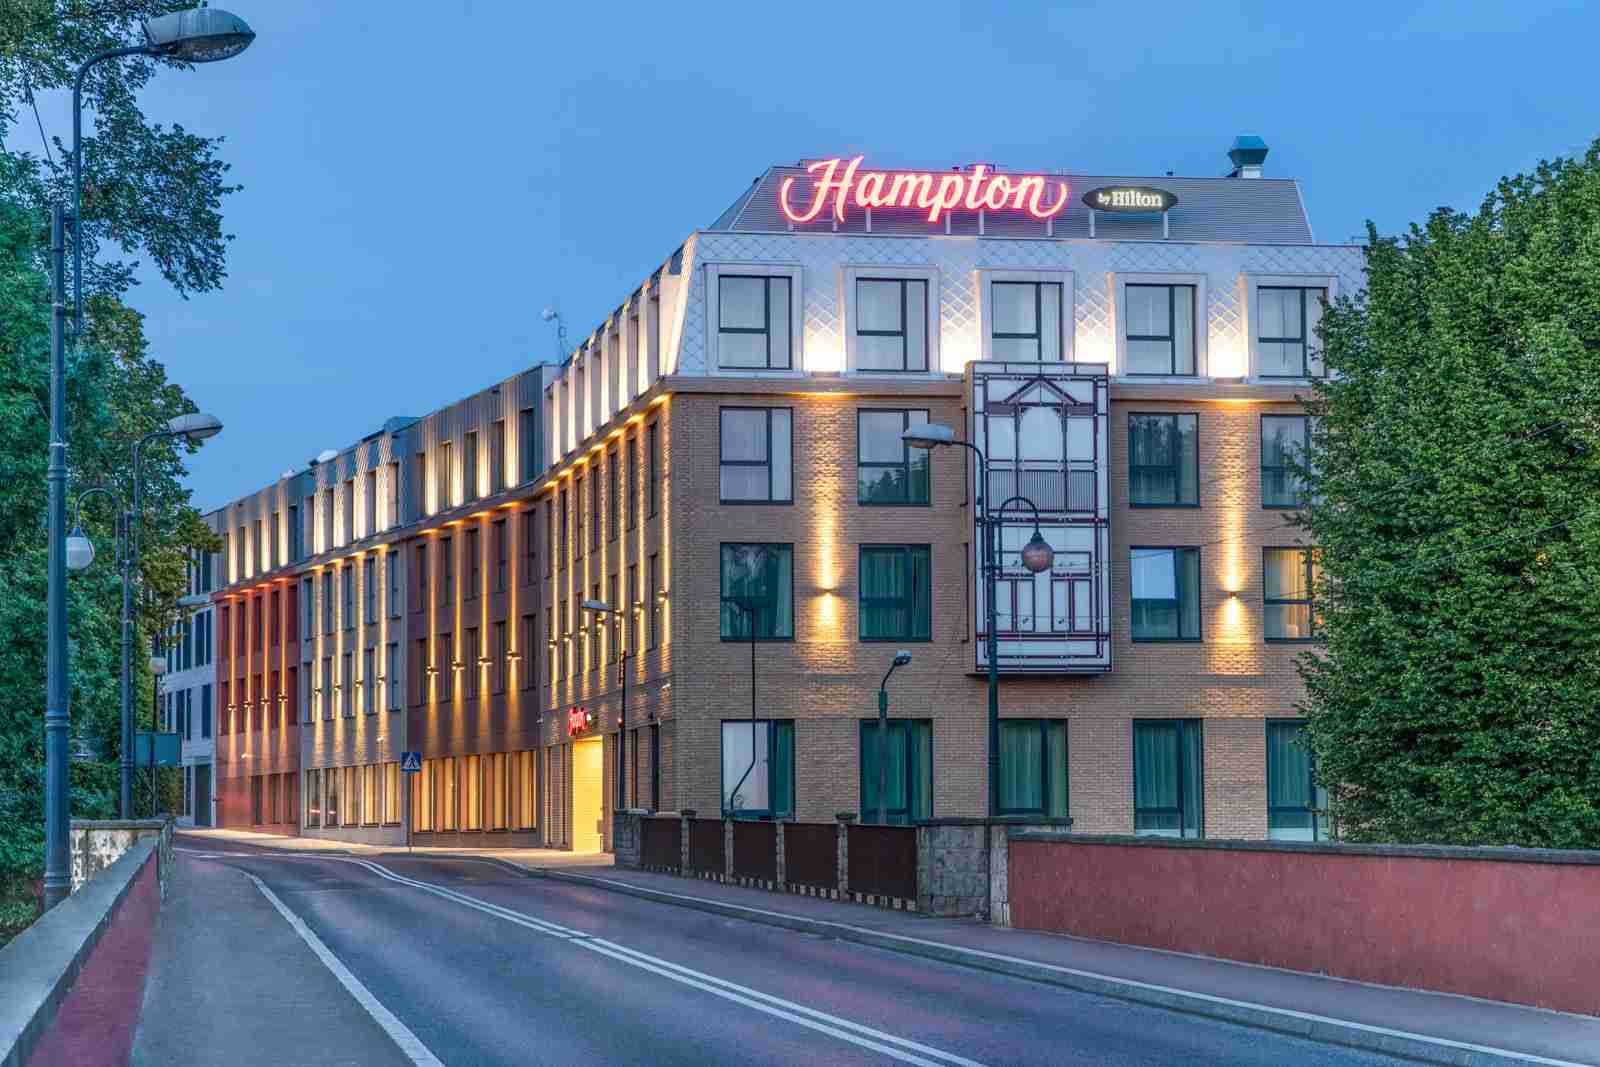 Hampton by Hilton Oswiecim. (Photo courtesy of Hilton)